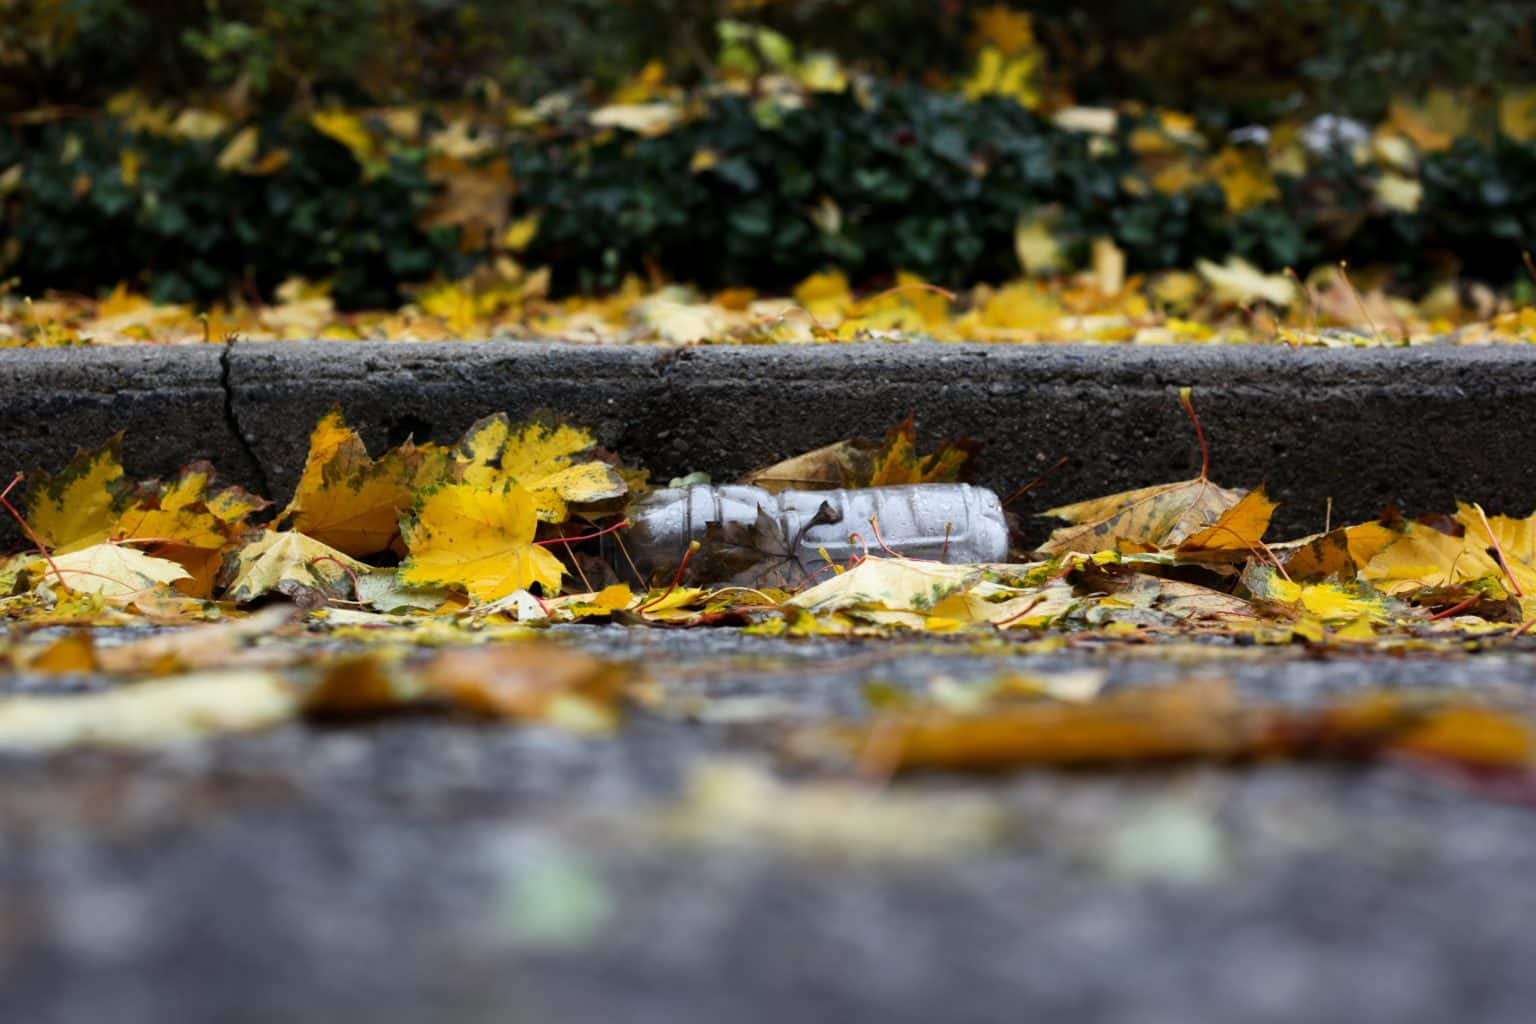 plastic bottle laying in the gutter partially covered with autumn leaves